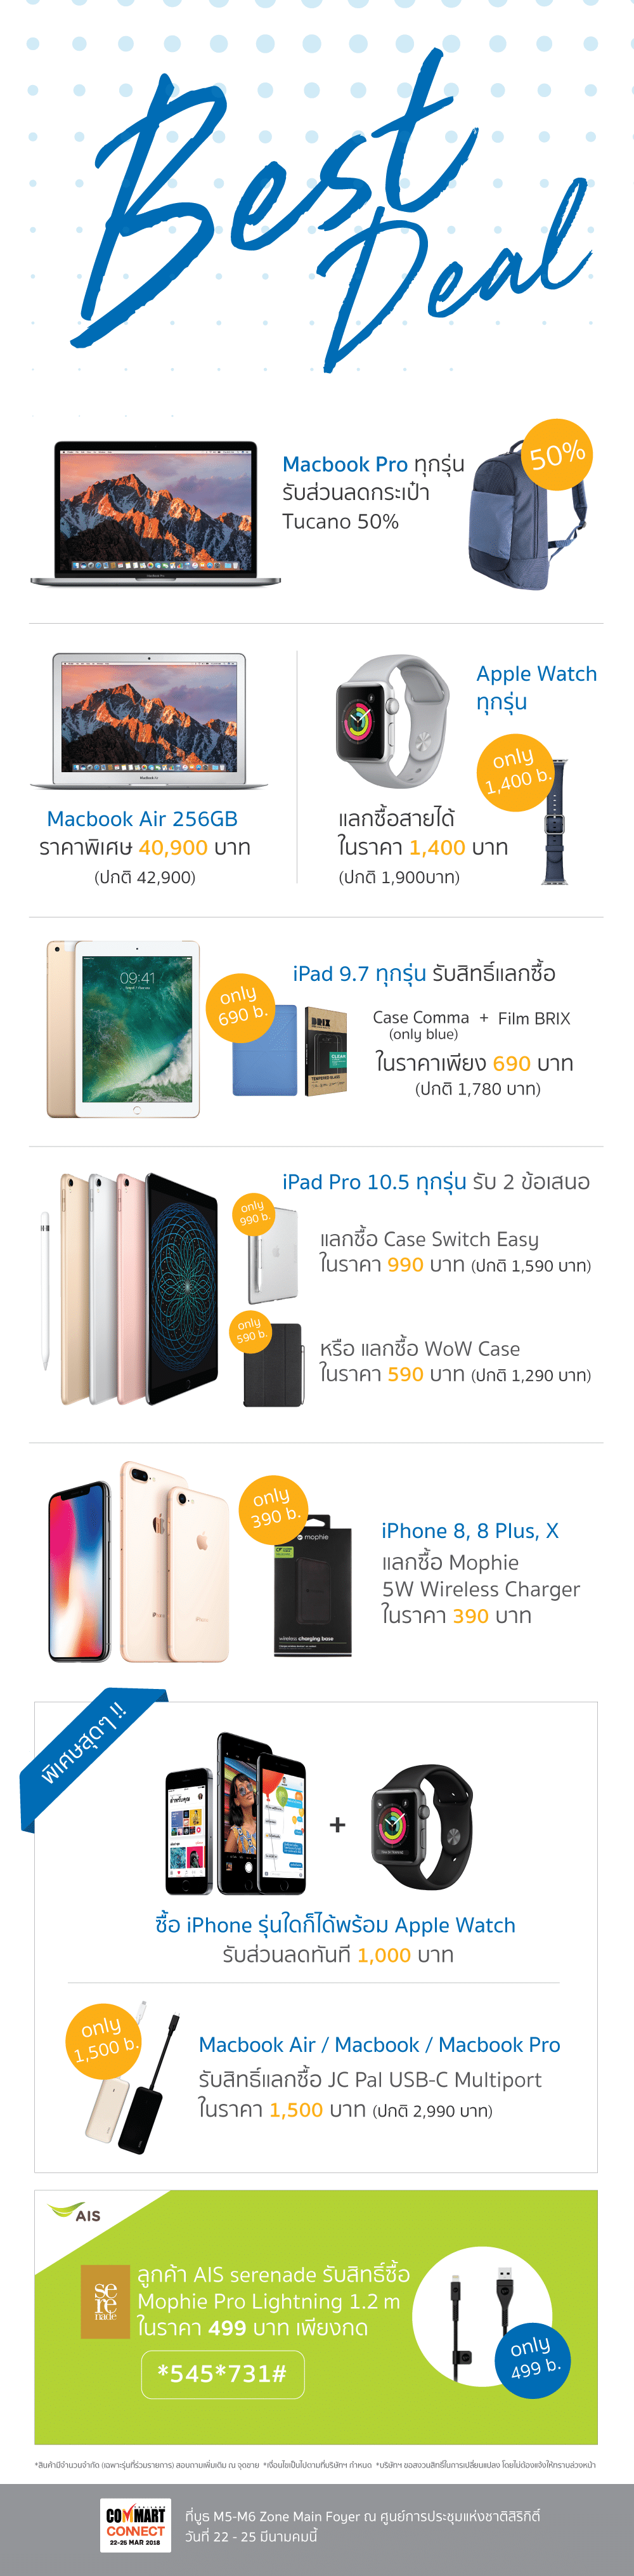 promotion istudio by spvi commart mar 2018-1